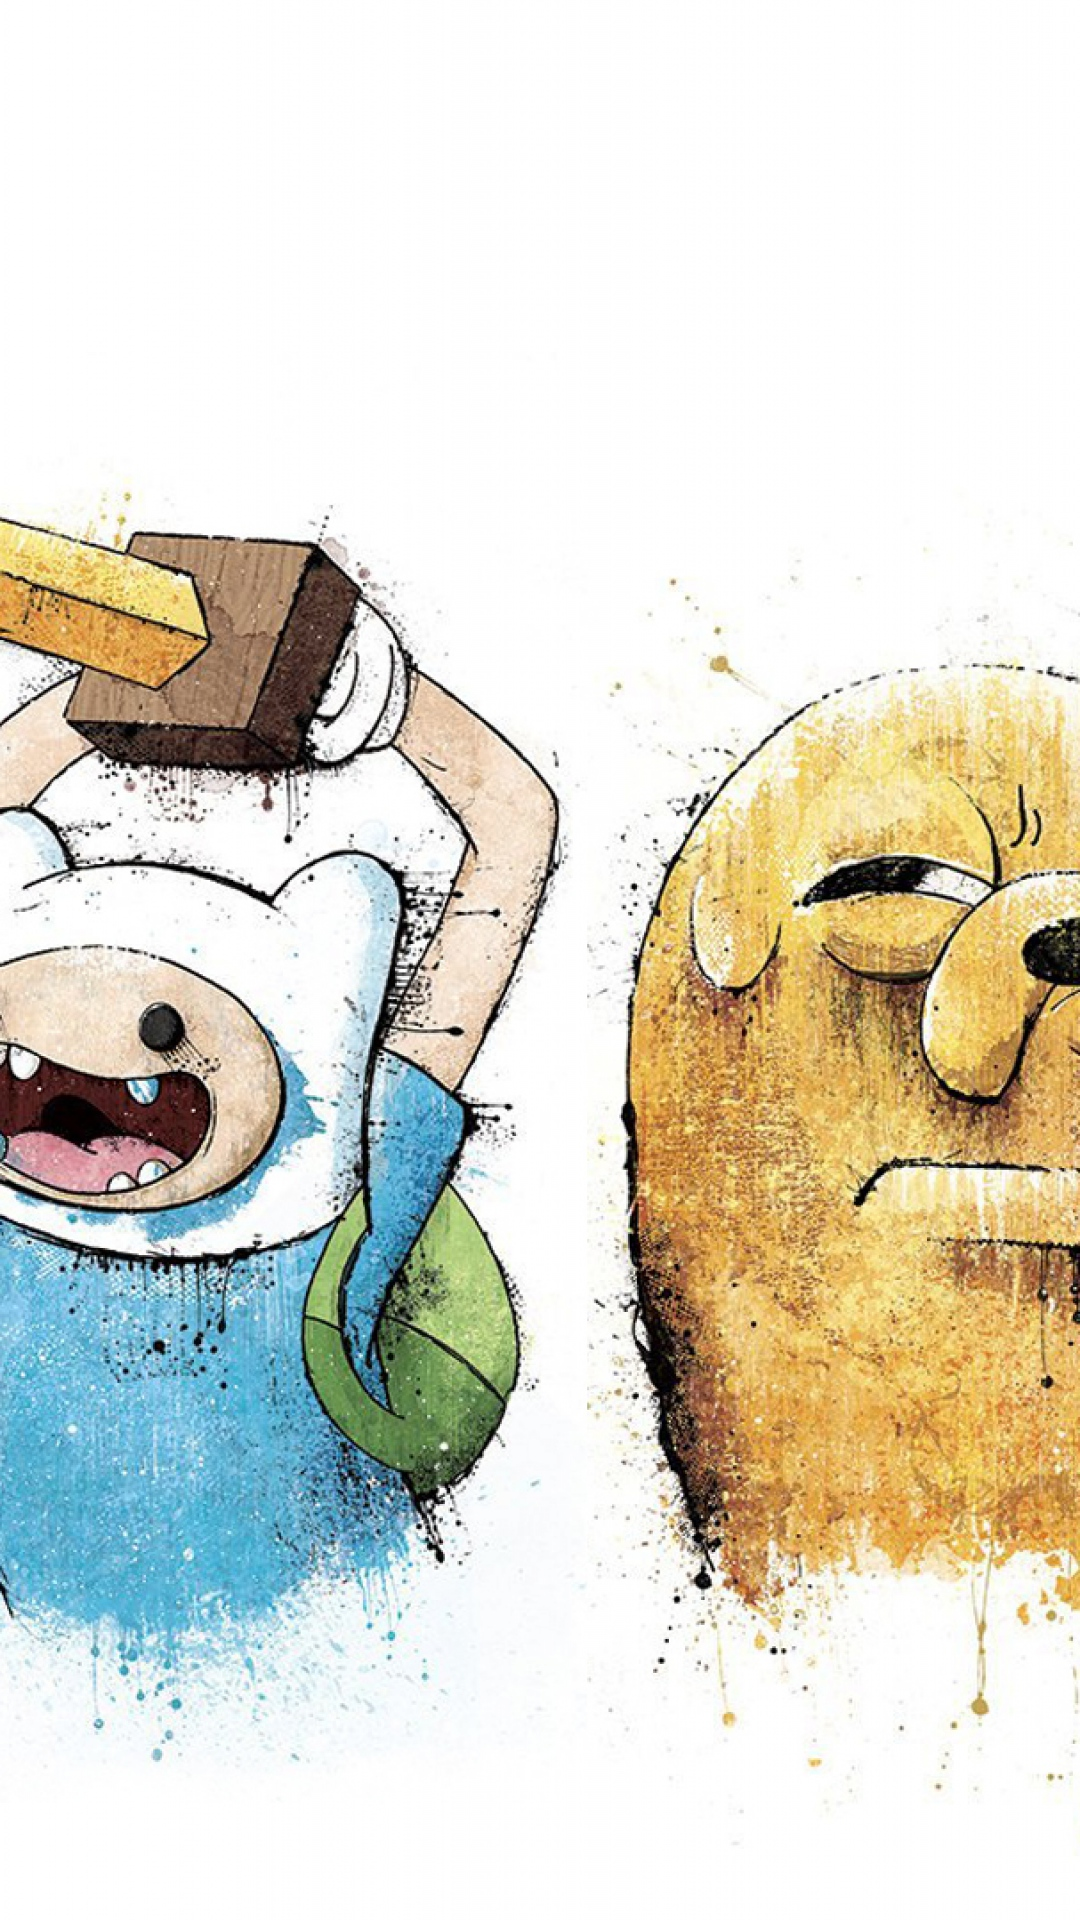 Wallpaper free adventure time iphone wallpaper download pic download thecheapjerseys Choice Image